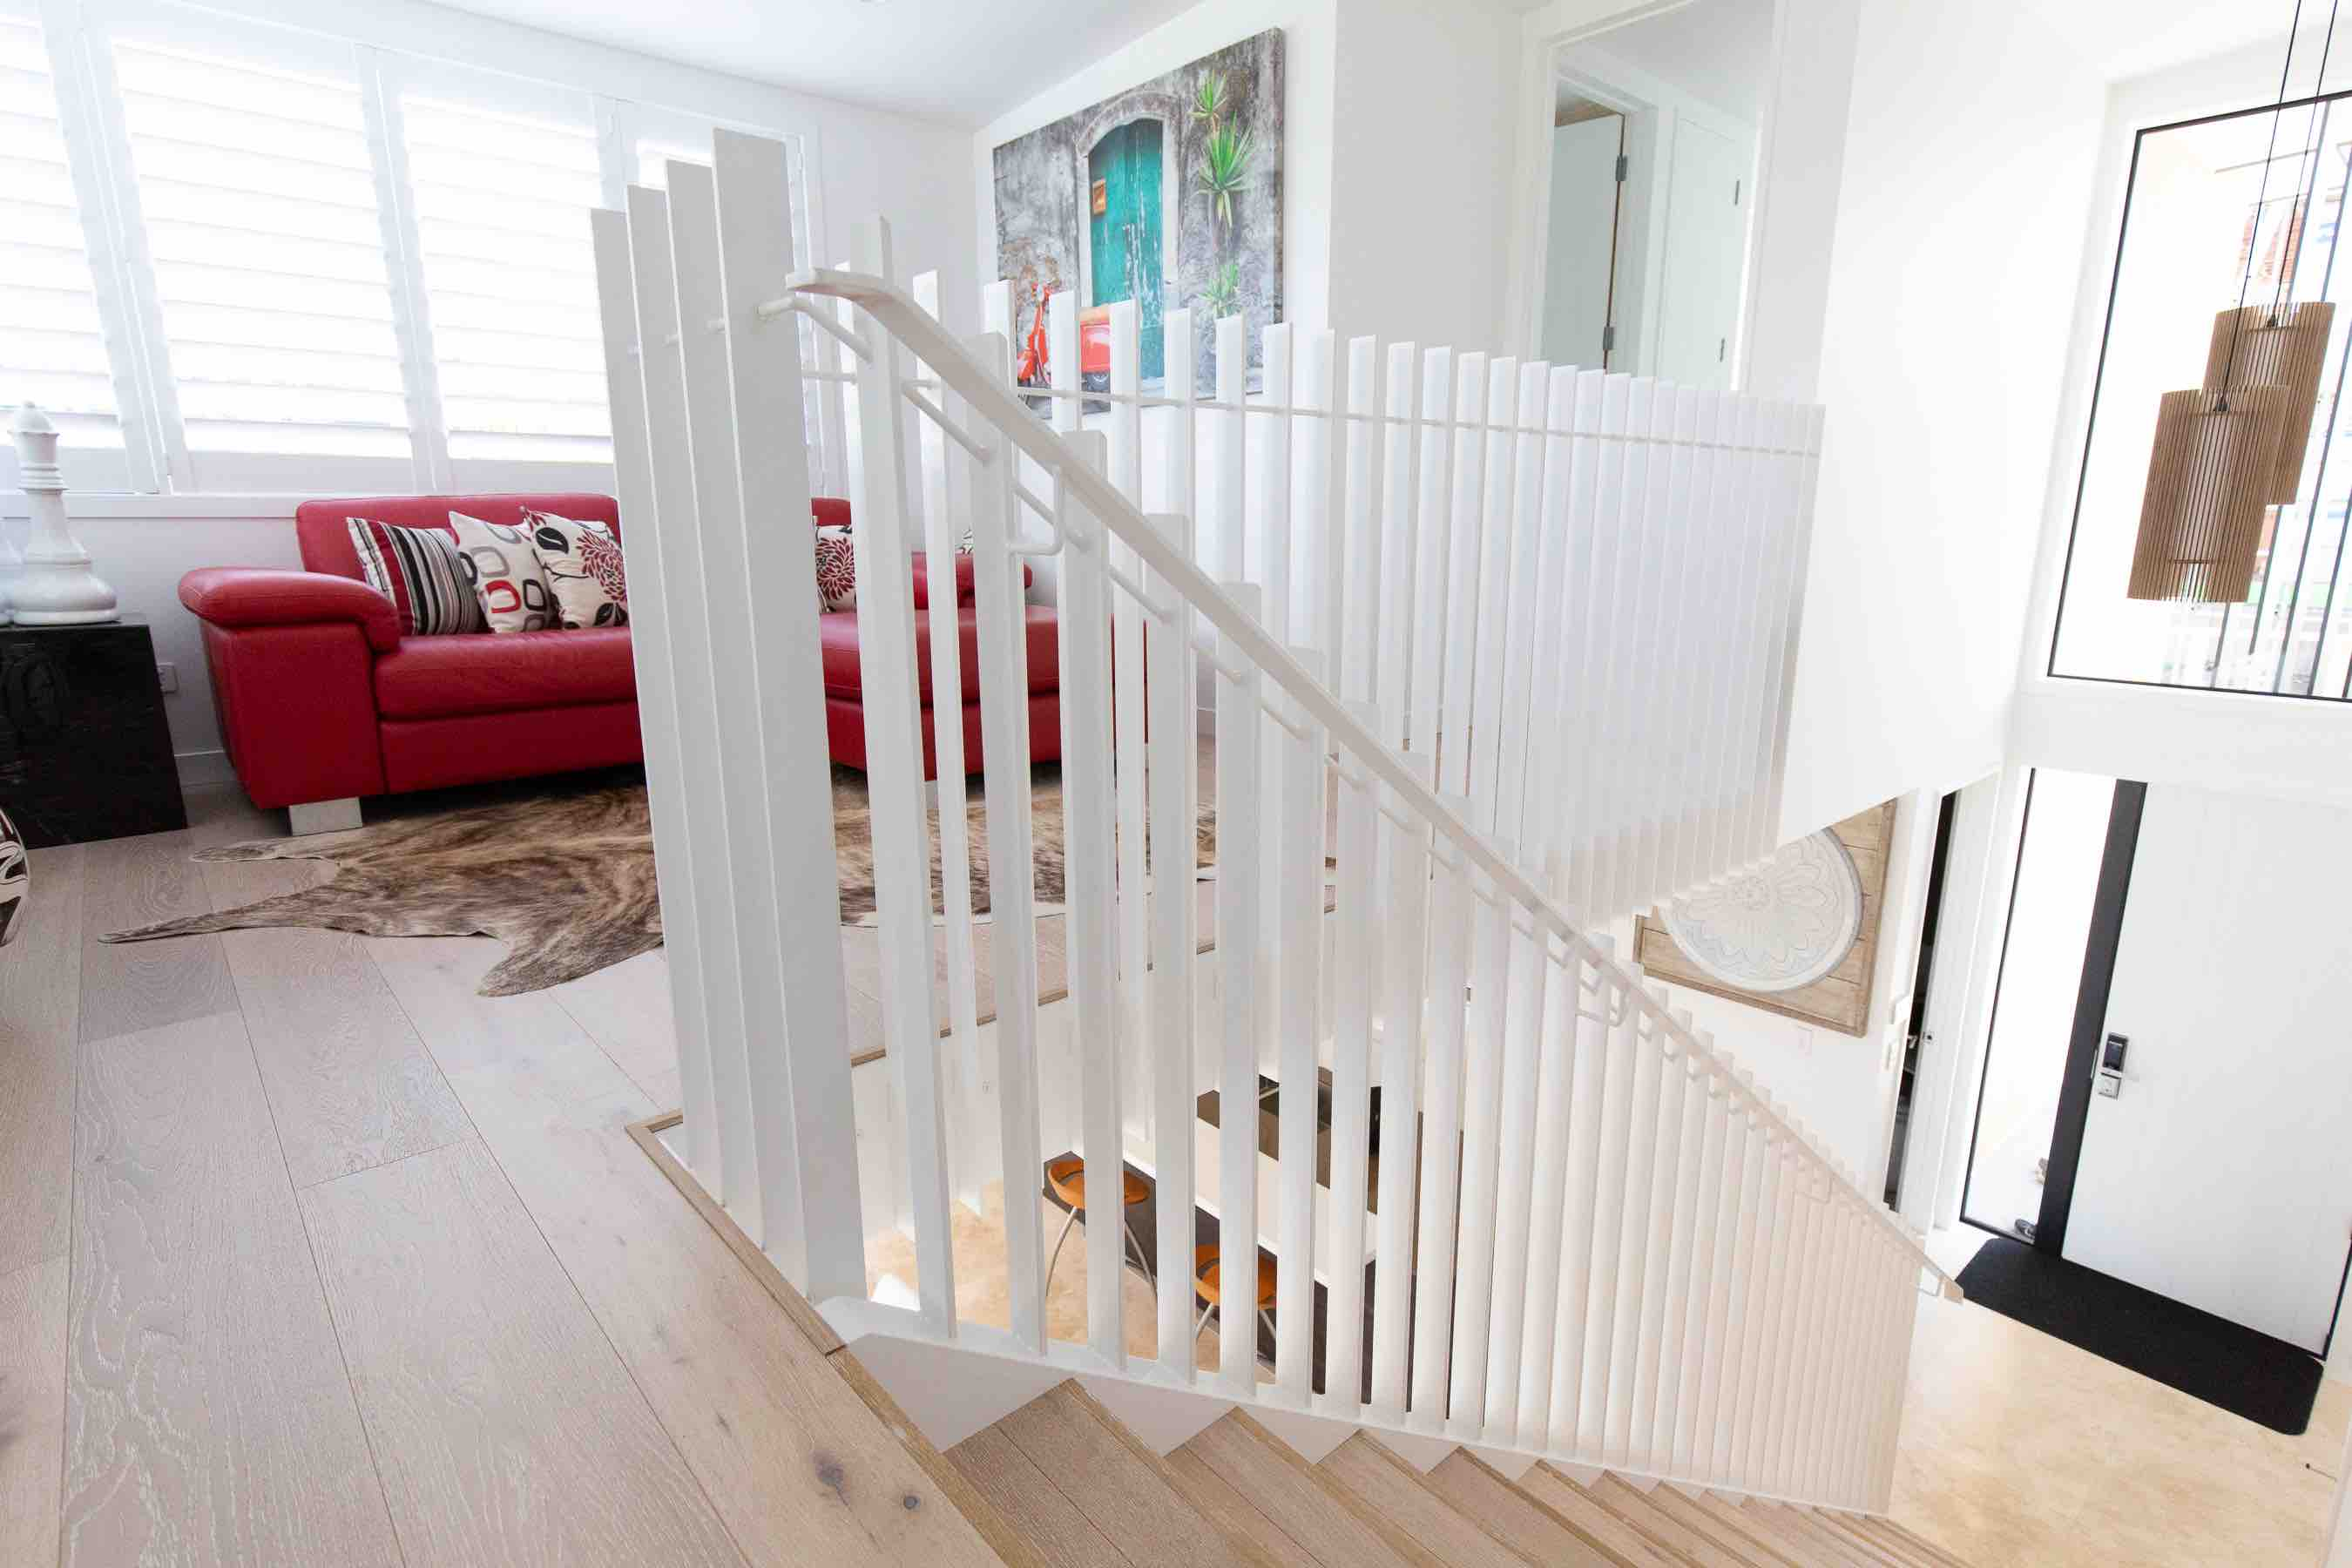 Contemporary staircase design with a metal handrail and balustrade.